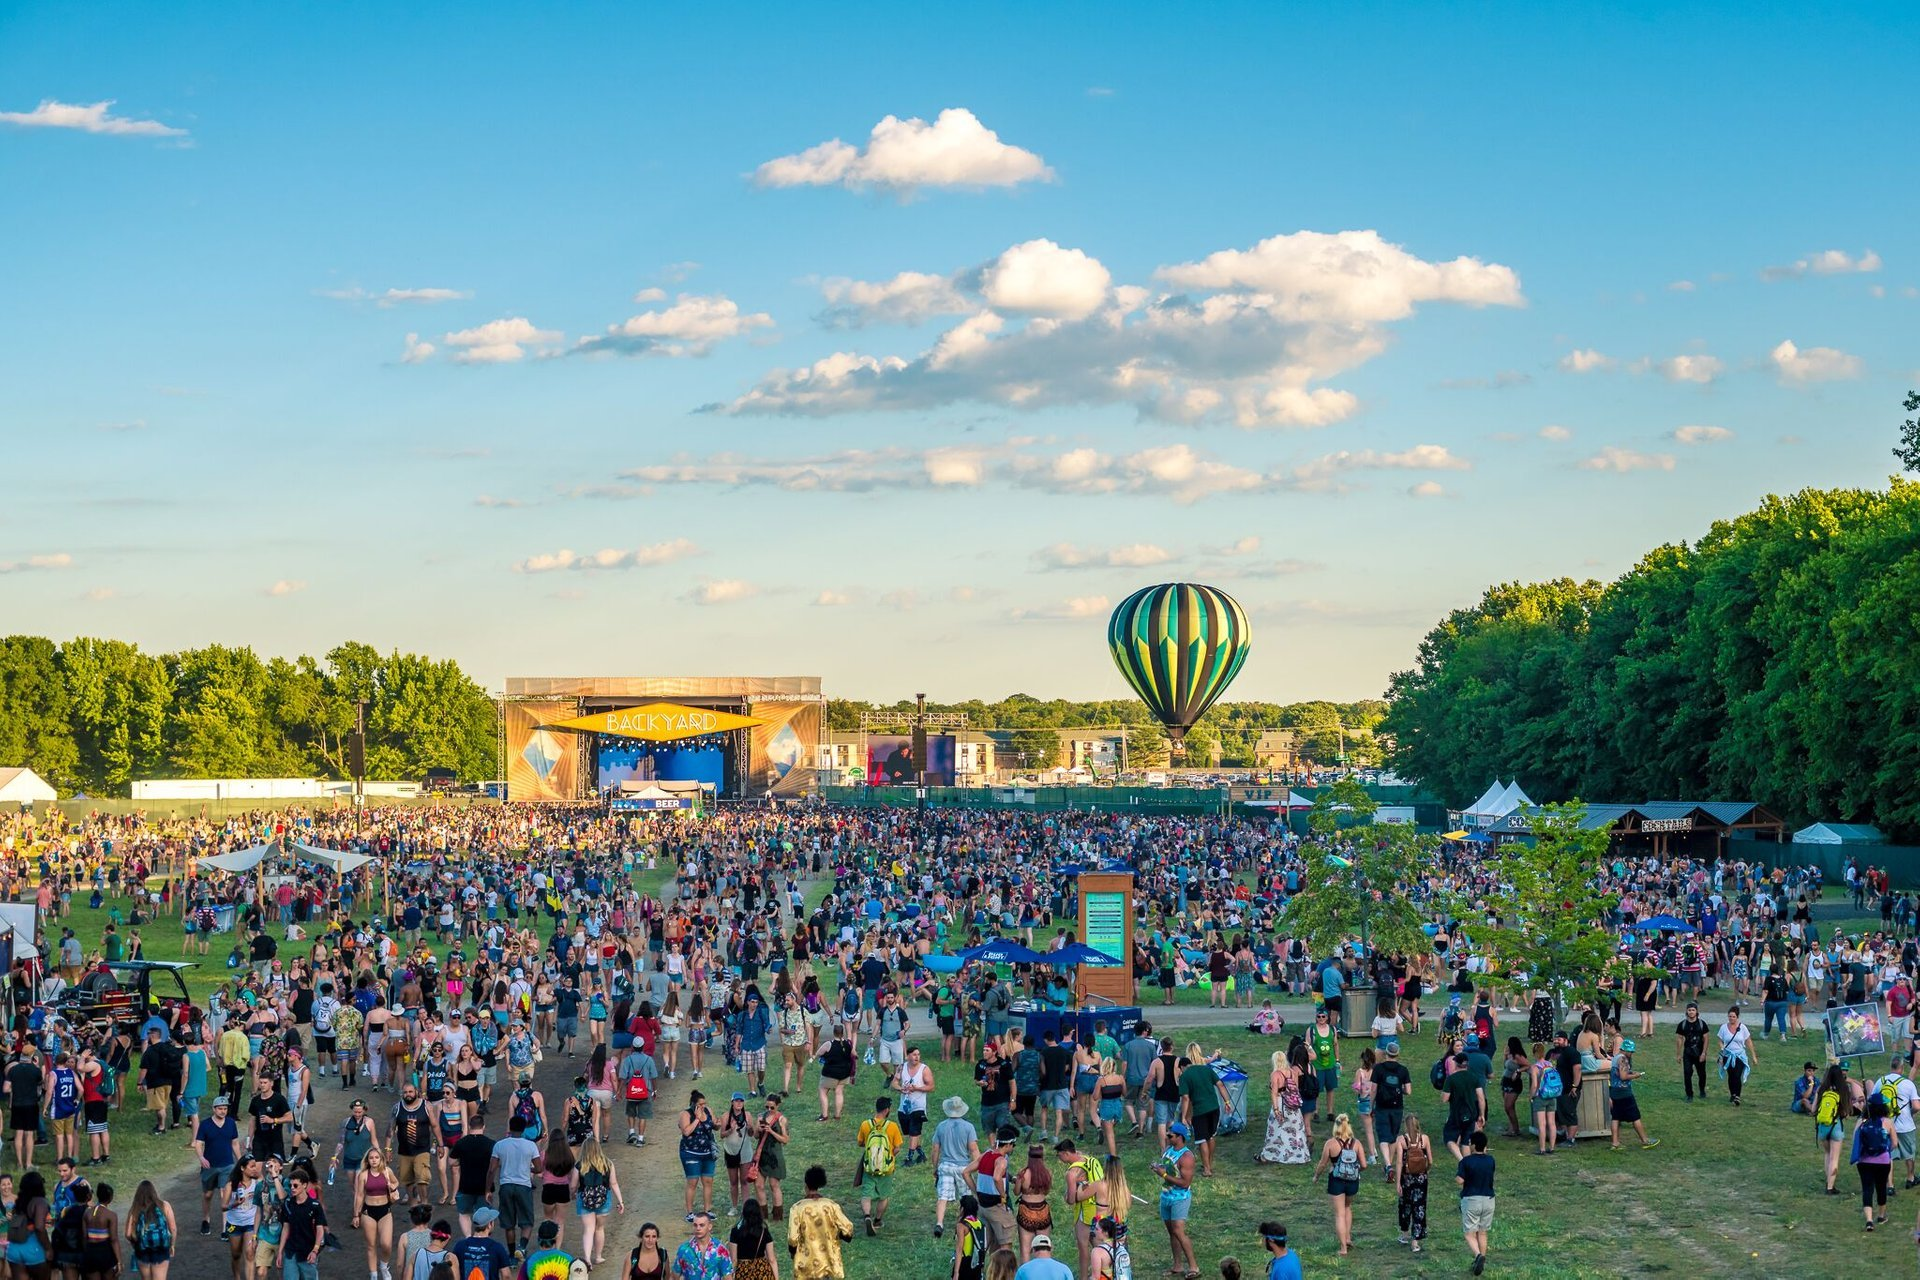 Best time for Firefly Music Festival in Delaware 2020